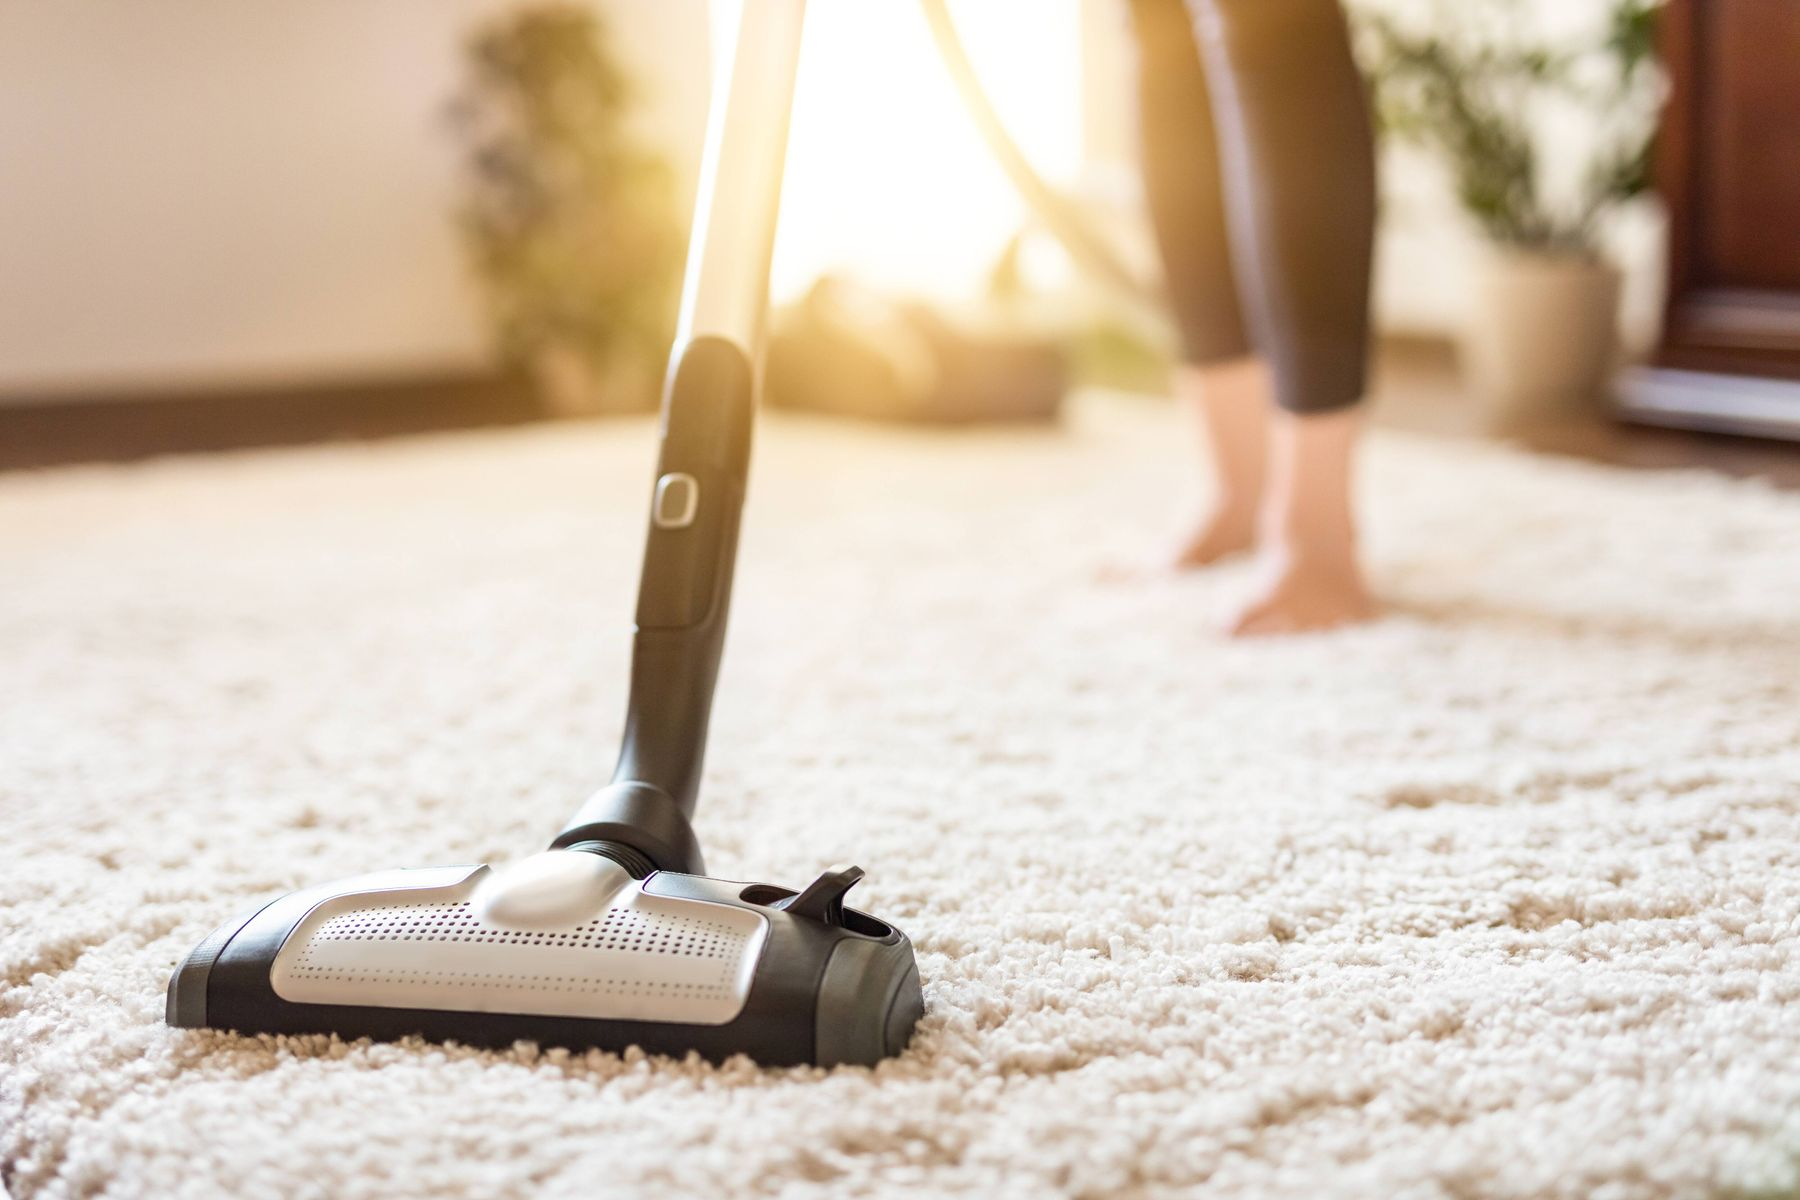 Vacuum cleaner to clean carpets